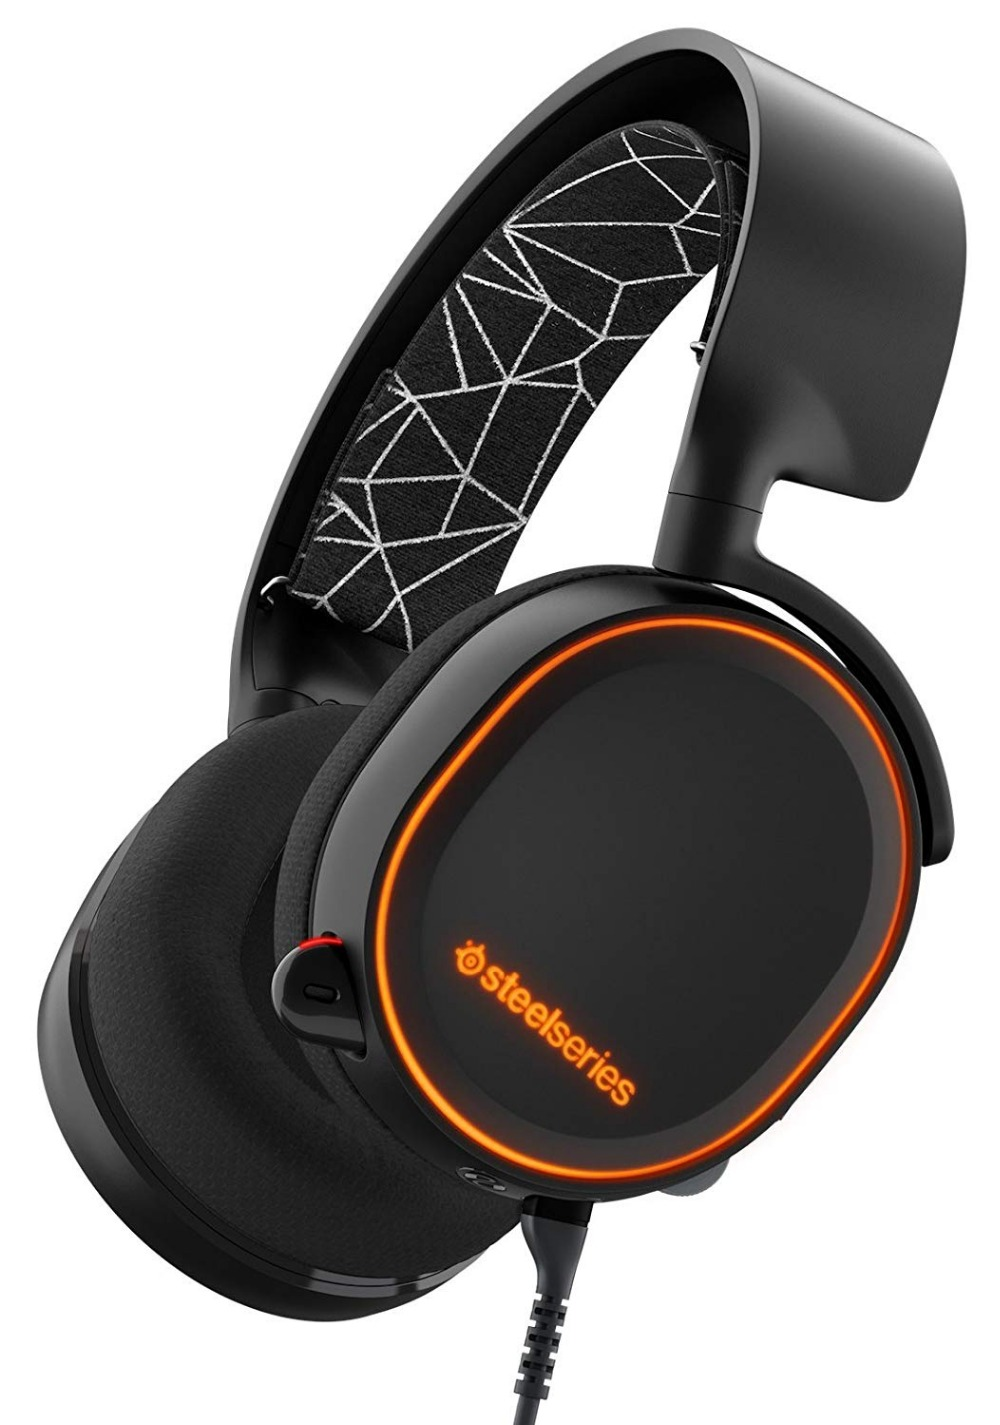 SteelSeries Arctis 5 Fone De Ouvido Gaming Headset com DTS: X 7.1 Surround para PC, PlayStation 4, VR, android e iOS freeshipping